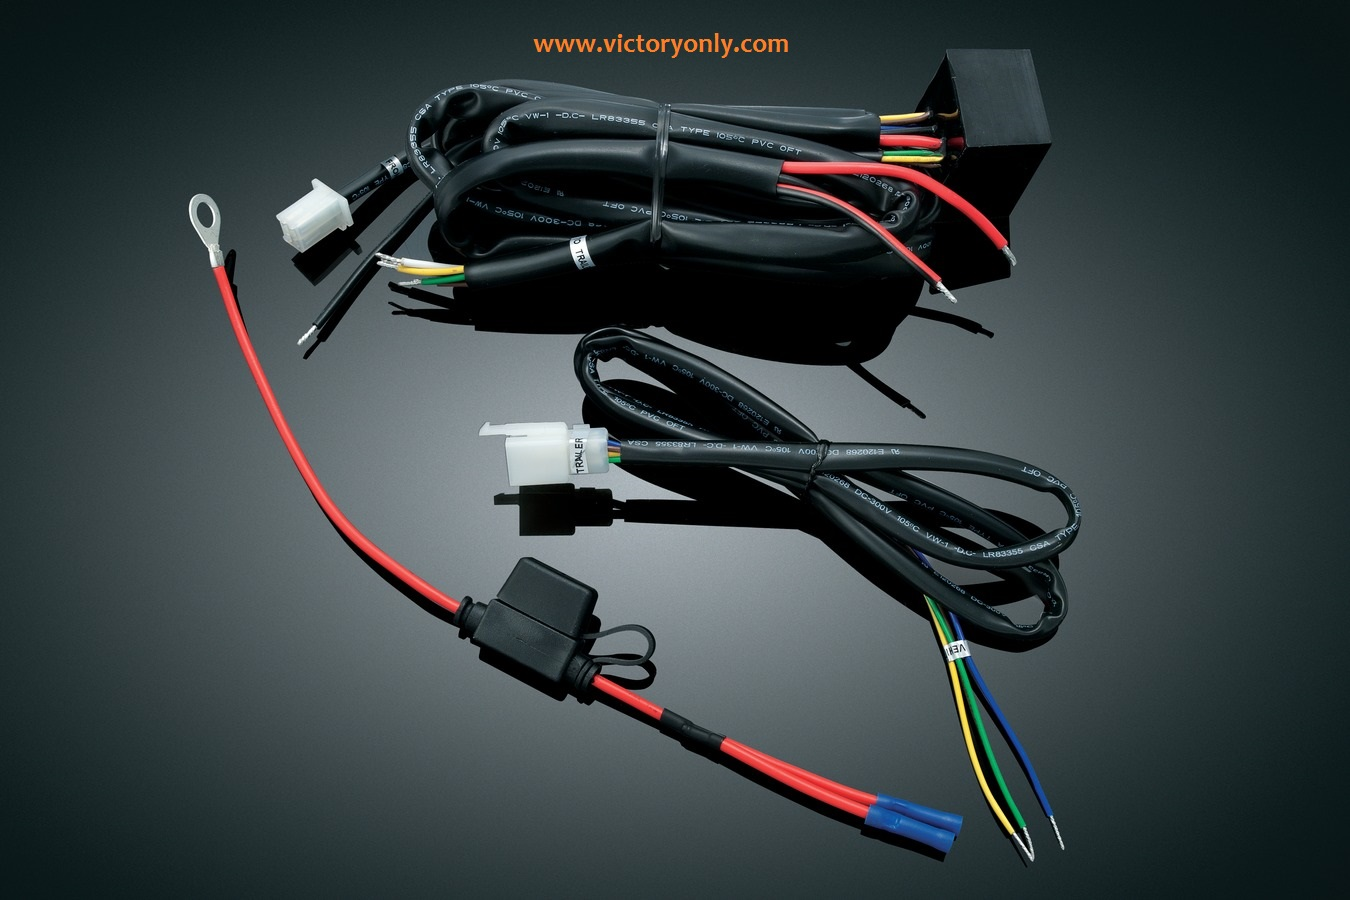 16997_kur_7671_tt_u_13_1350x900_RGB_72DPI trailer wiring harnesses for victory motorcycle Universal Wiring Harness Diagram at mifinder.co